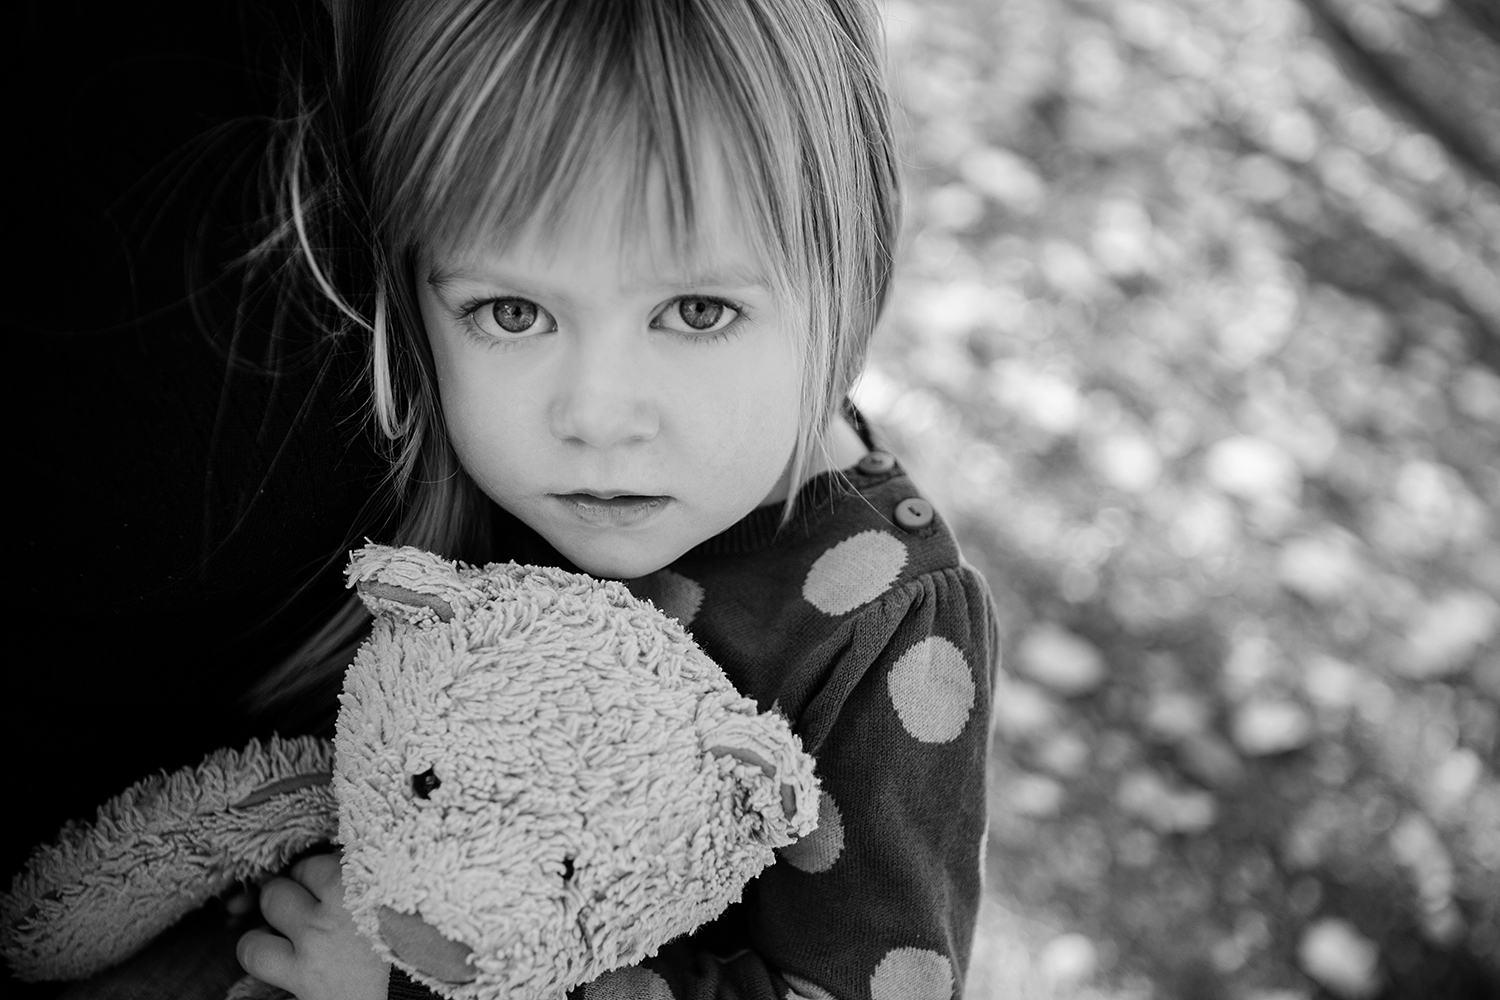 Small child hugging her teddy bear